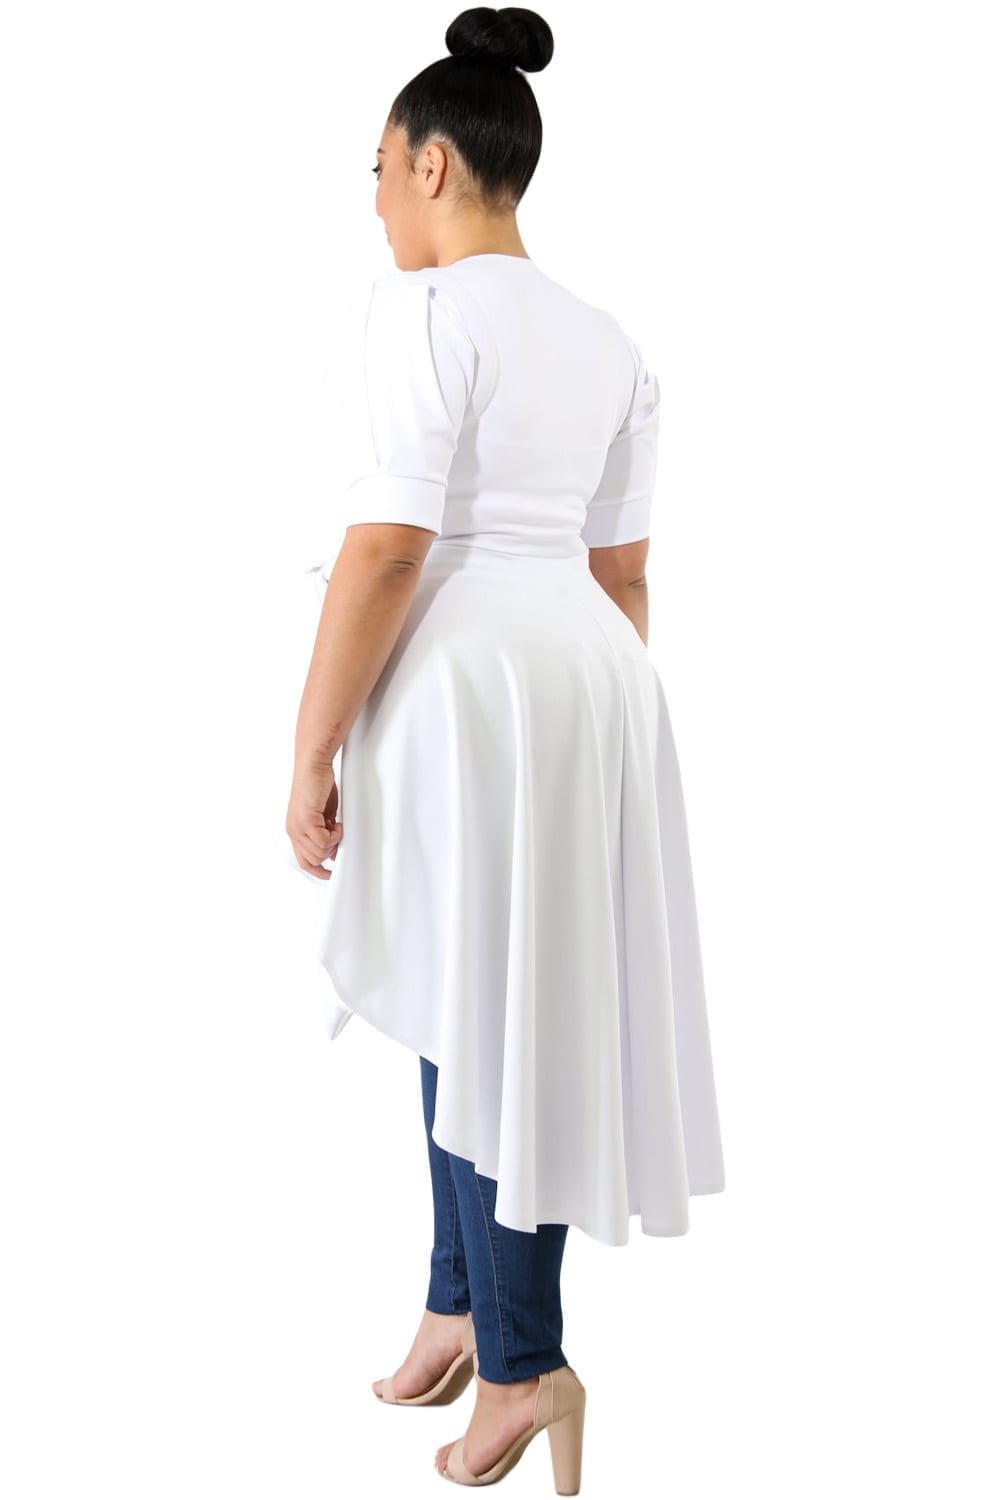 White-Puff-Long-Tail-Plus-Size-Top-LC251